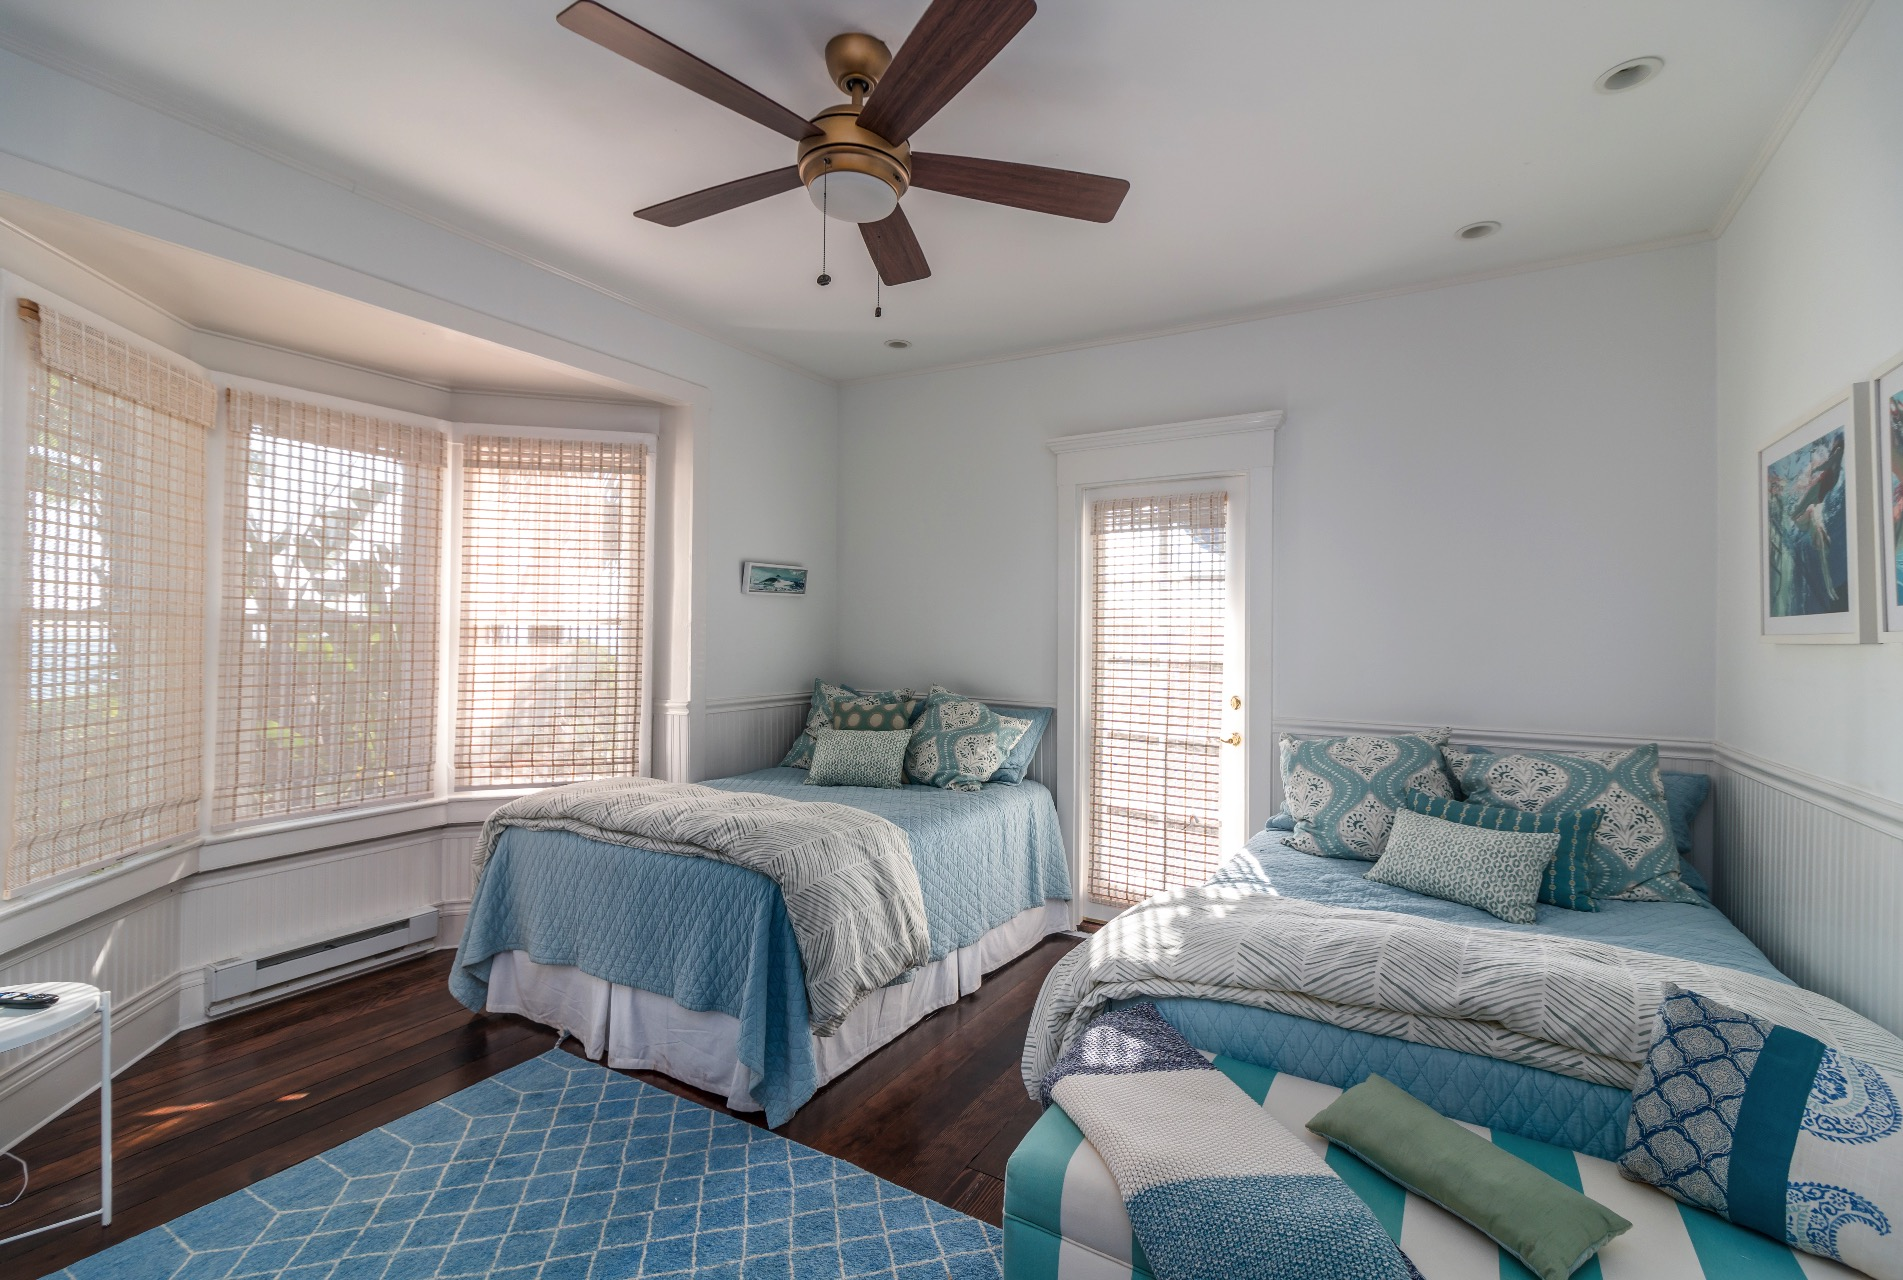 Two full beds, ceiling fan and door out to the side patio.